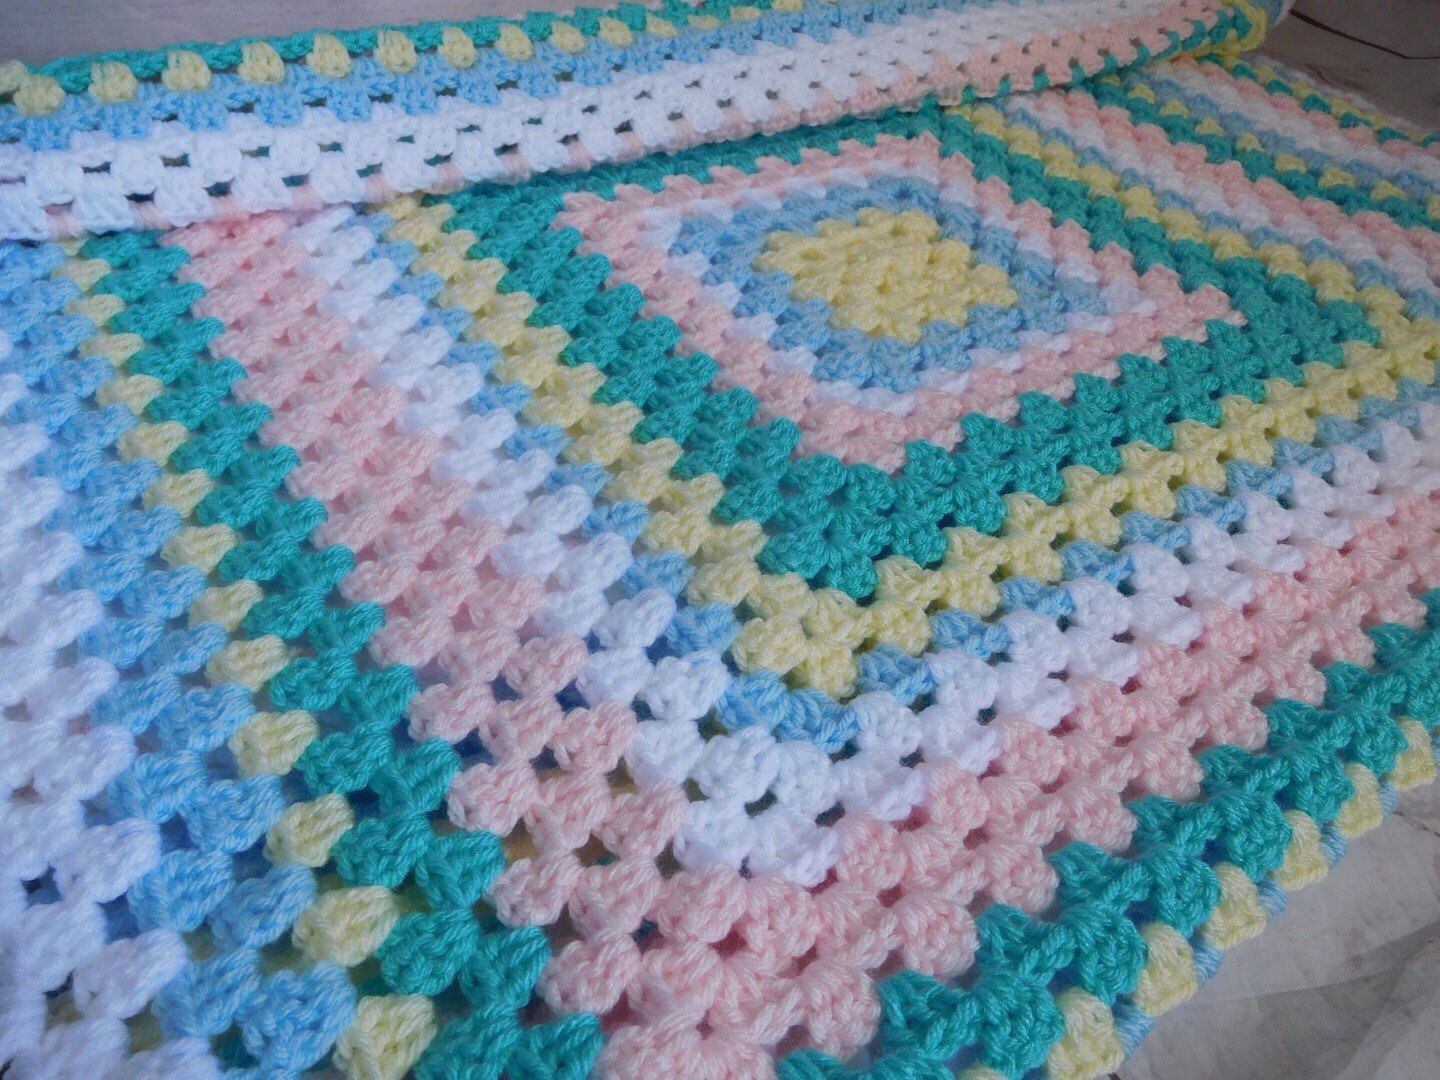 Pastel color granny square baby blanket. This is a very special handmade crochet baby blanket. This baby afghan will make a wonderful baby shower gift. This blanket would make a lovely addition to your baby nursery decor. Perfect also, for travel, strollers, prams, cribs, tummy time and photo props